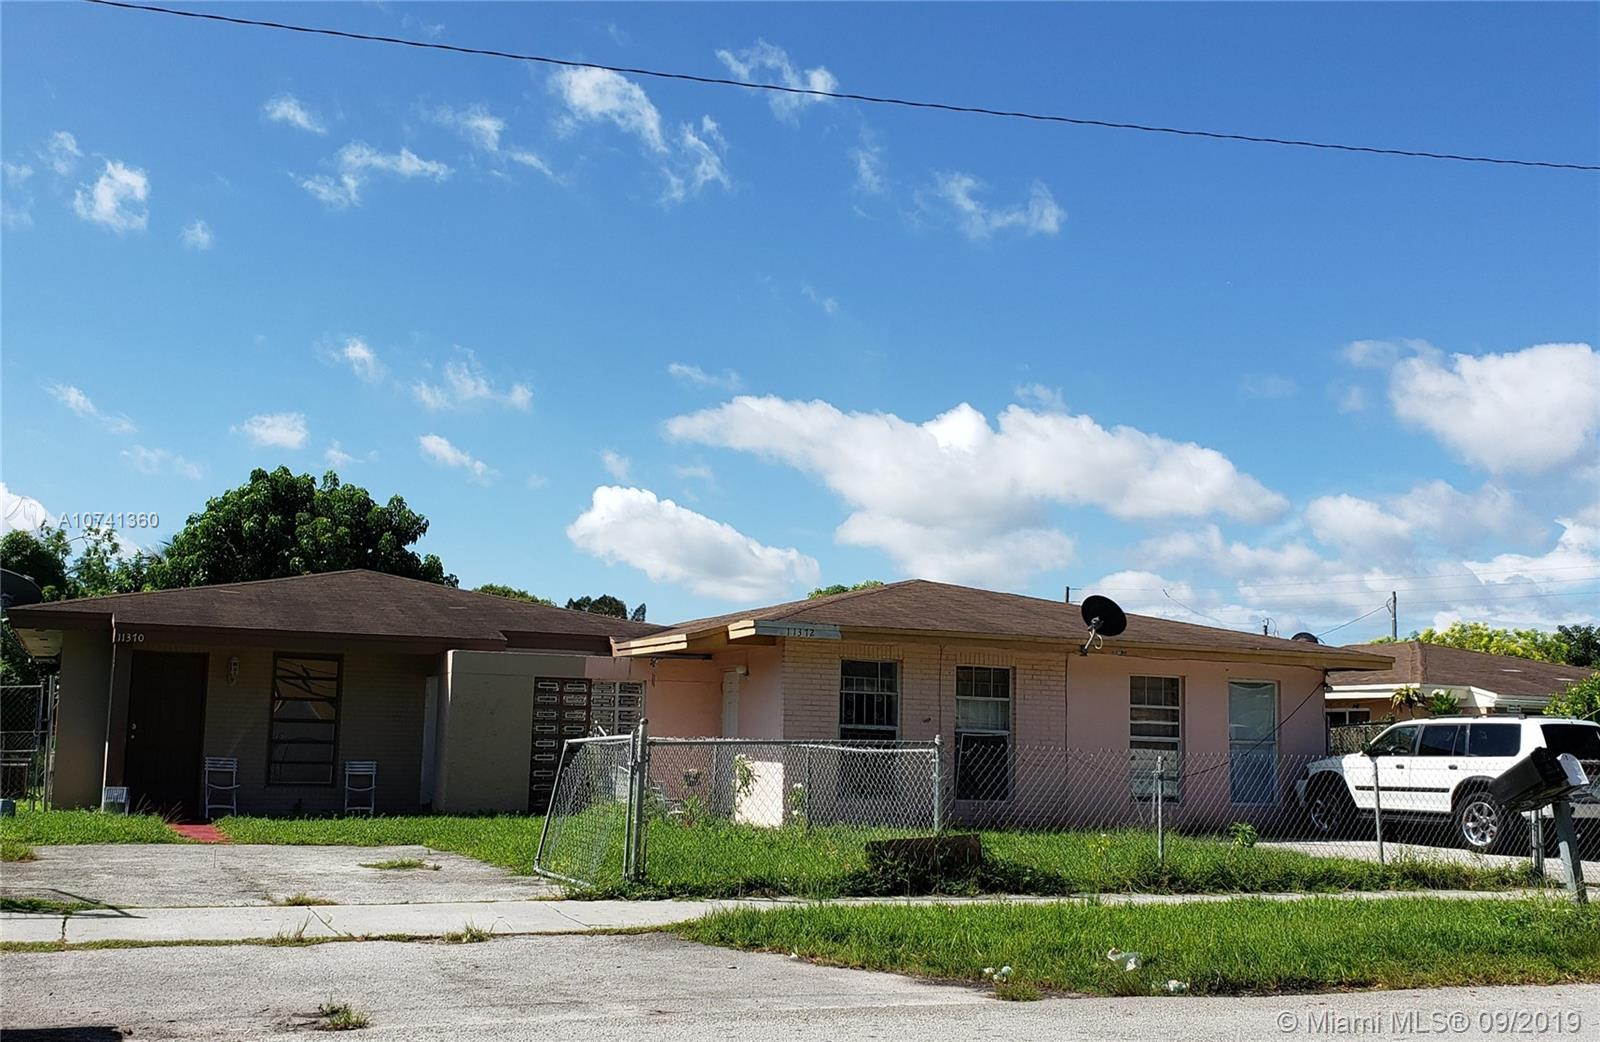 11370 SW 189th St, Kendall in Miami-dade County County, FL 33157 Home for Sale